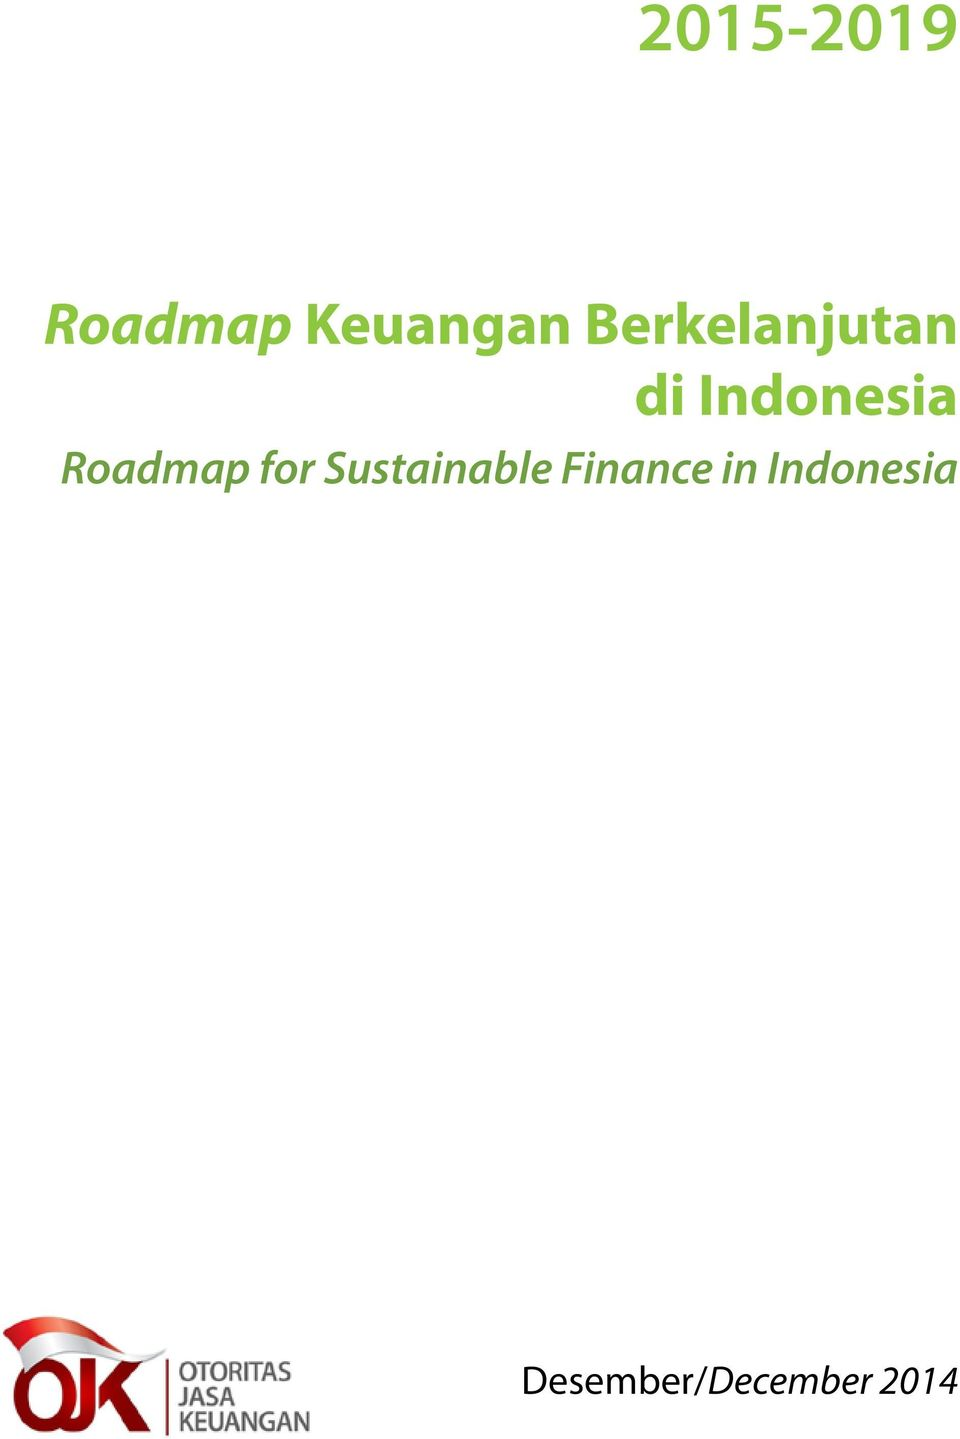 Roadmap for Sustainable